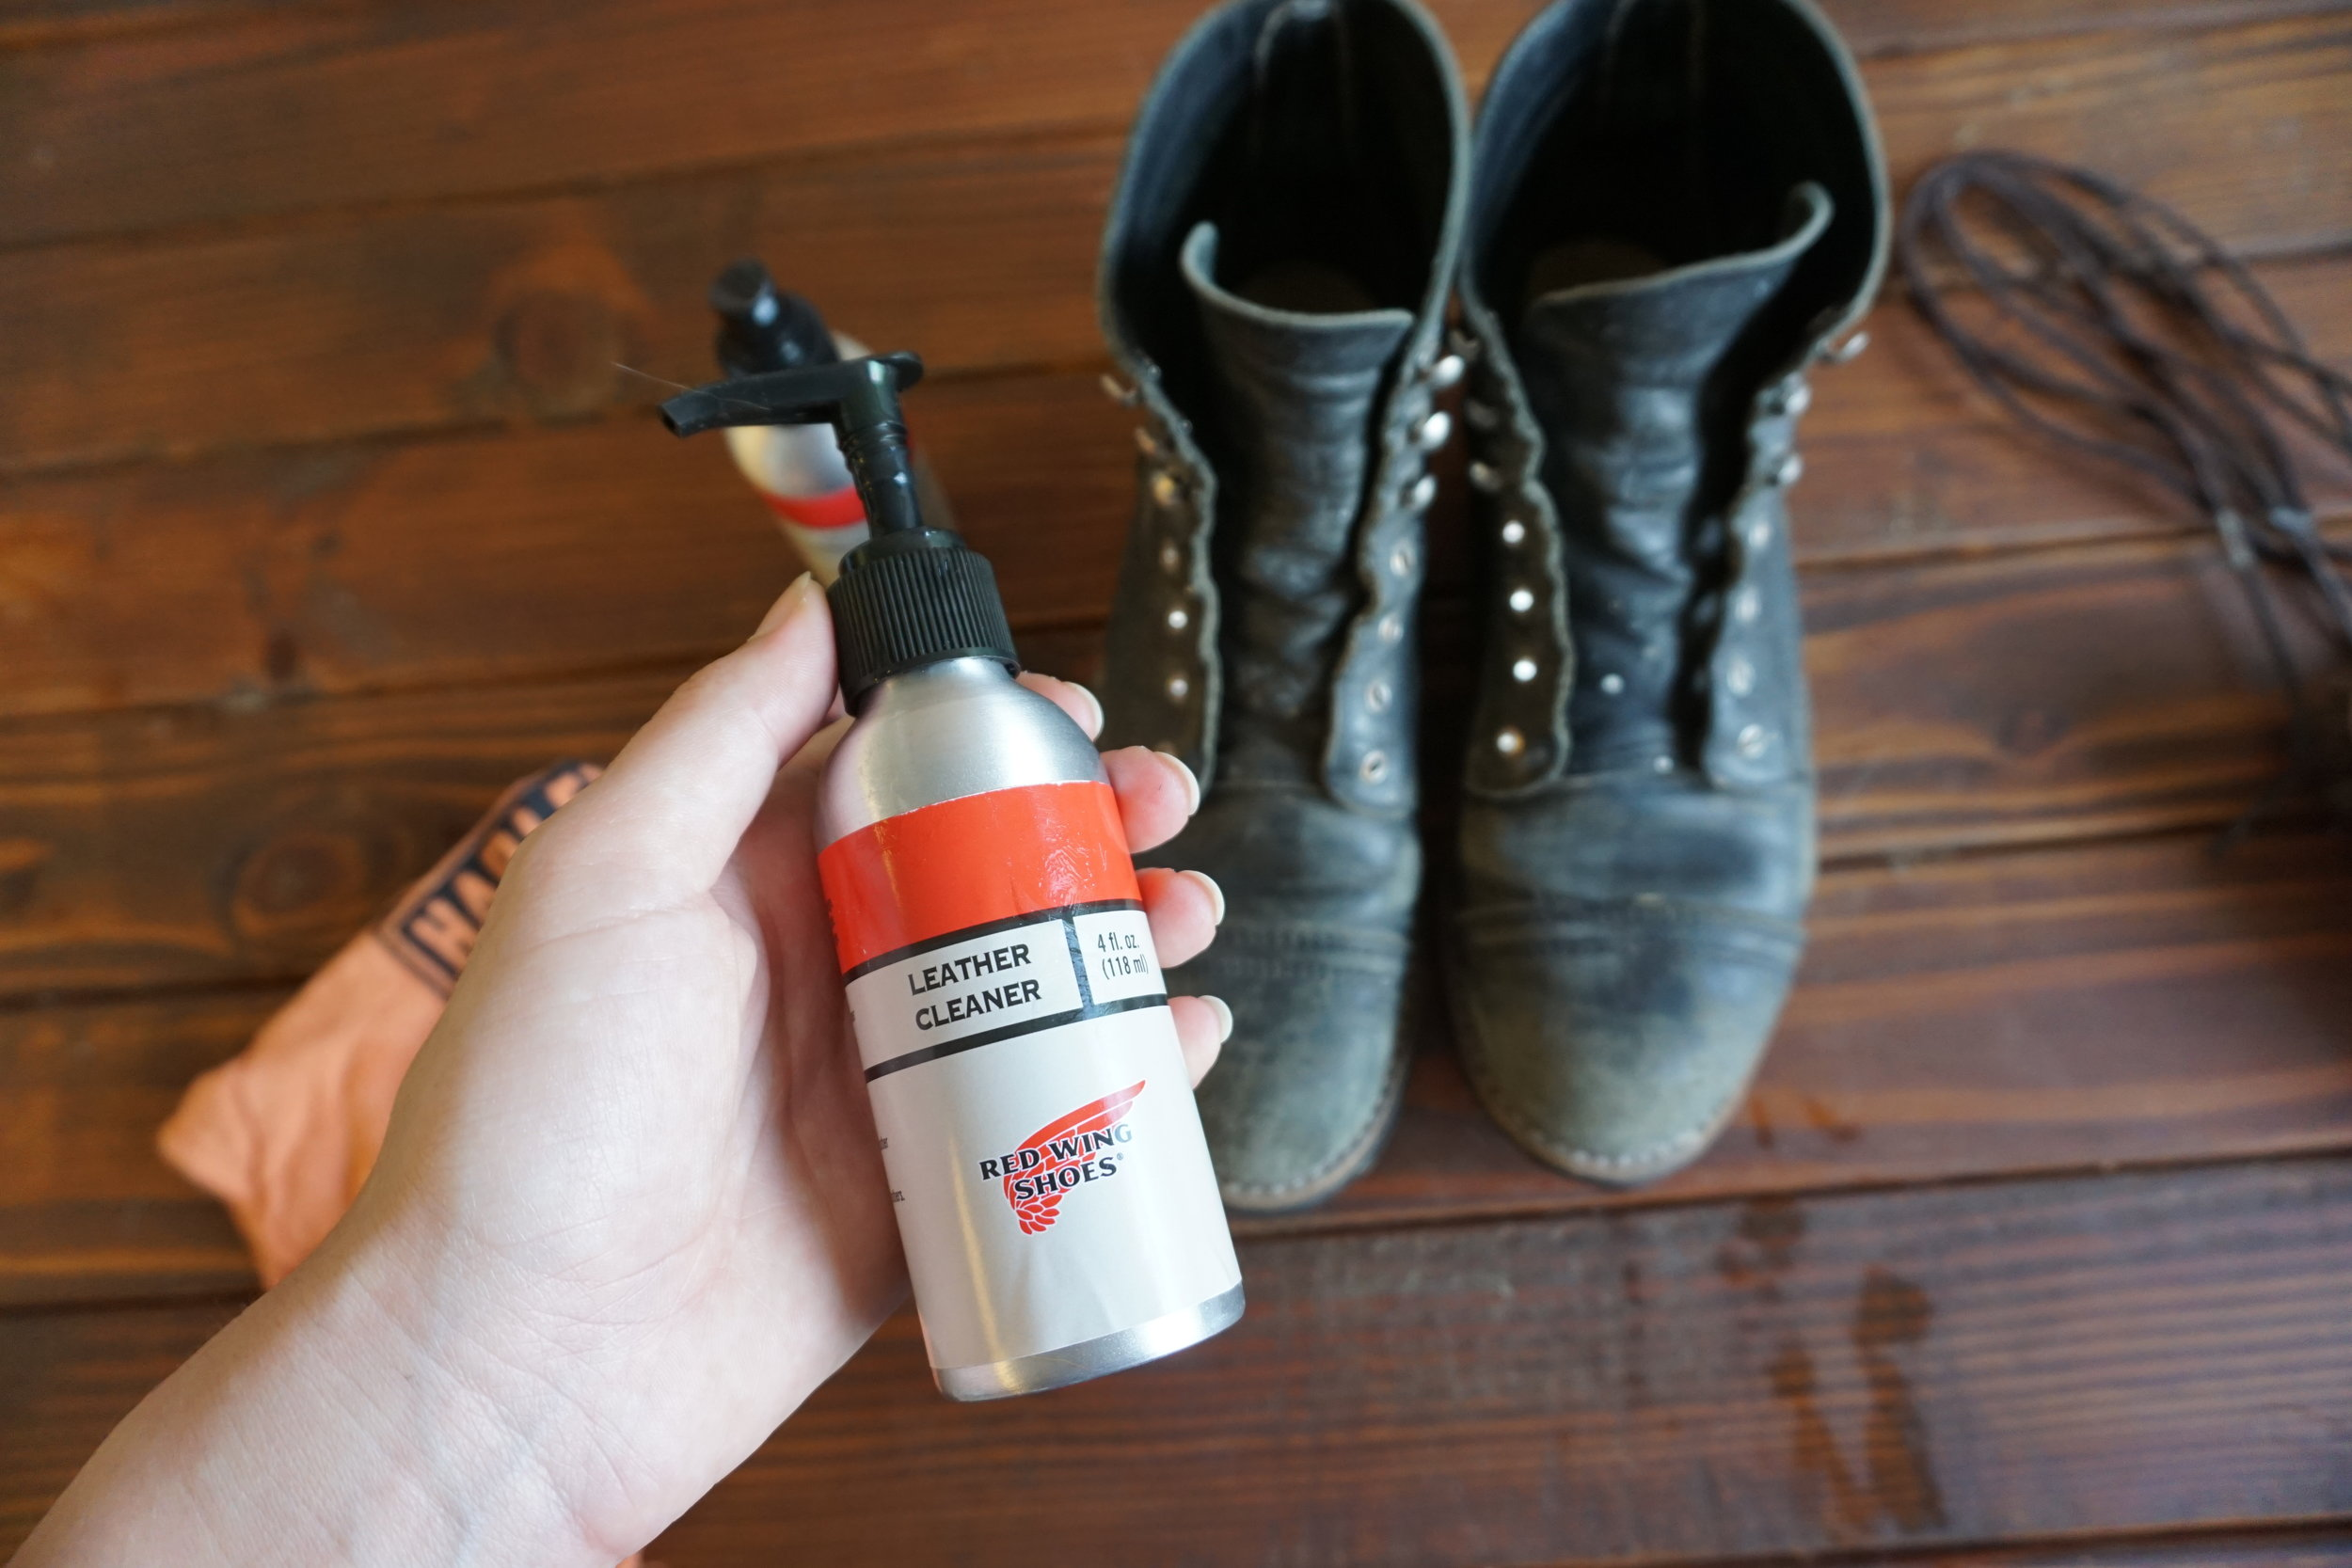 Next is the leather cleaner